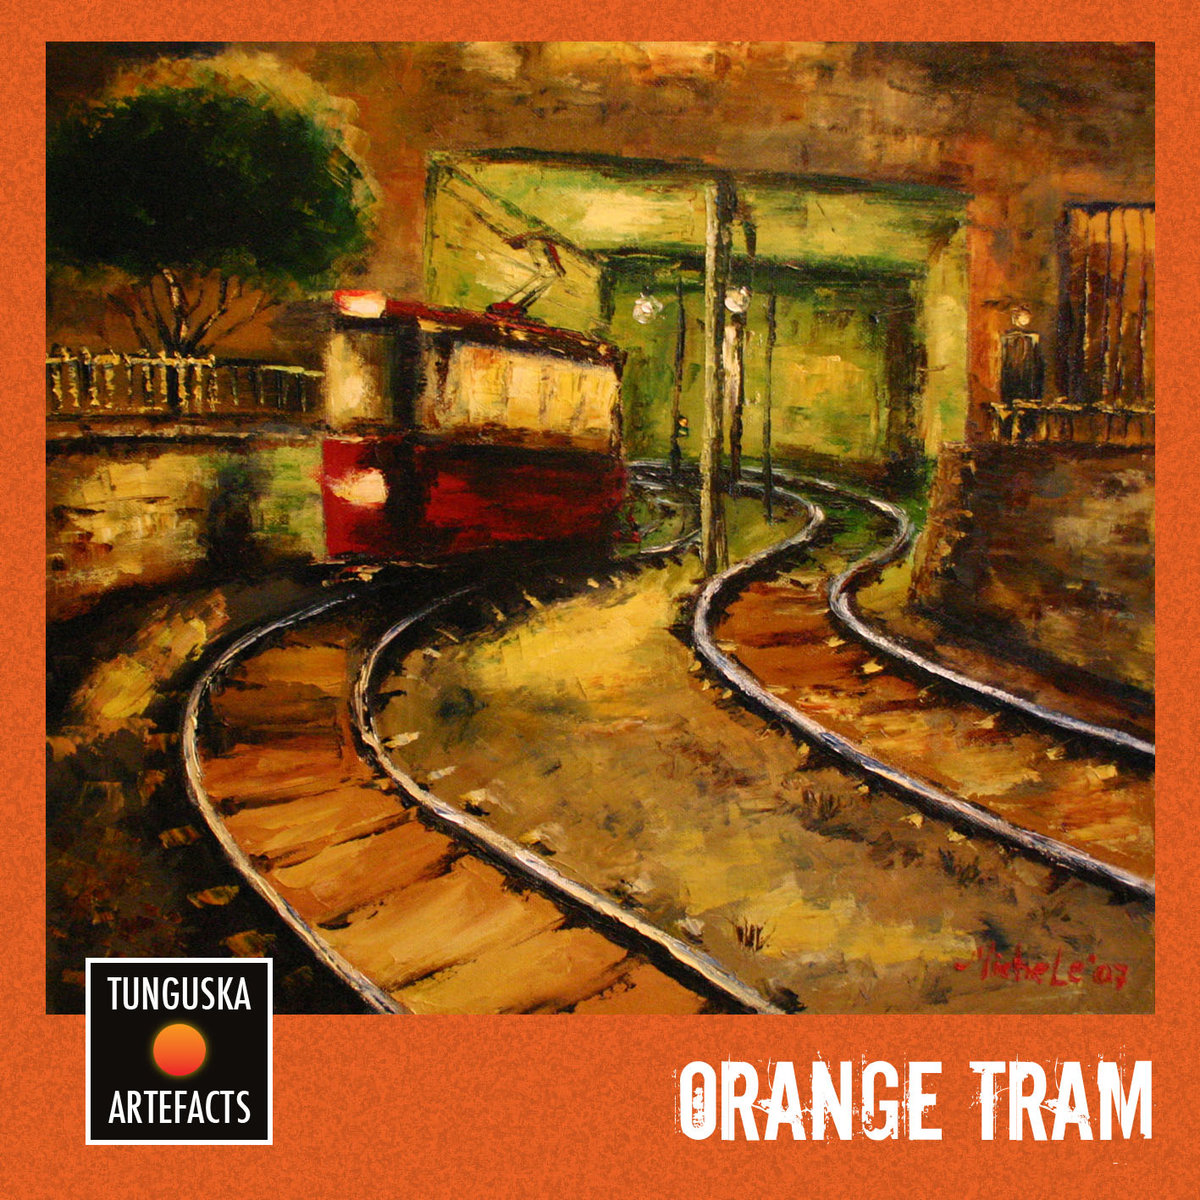 Spies Boys - Men on Vacation @ 'Tunguska Artefacts - Orange Tram' album (electronic, ambient)